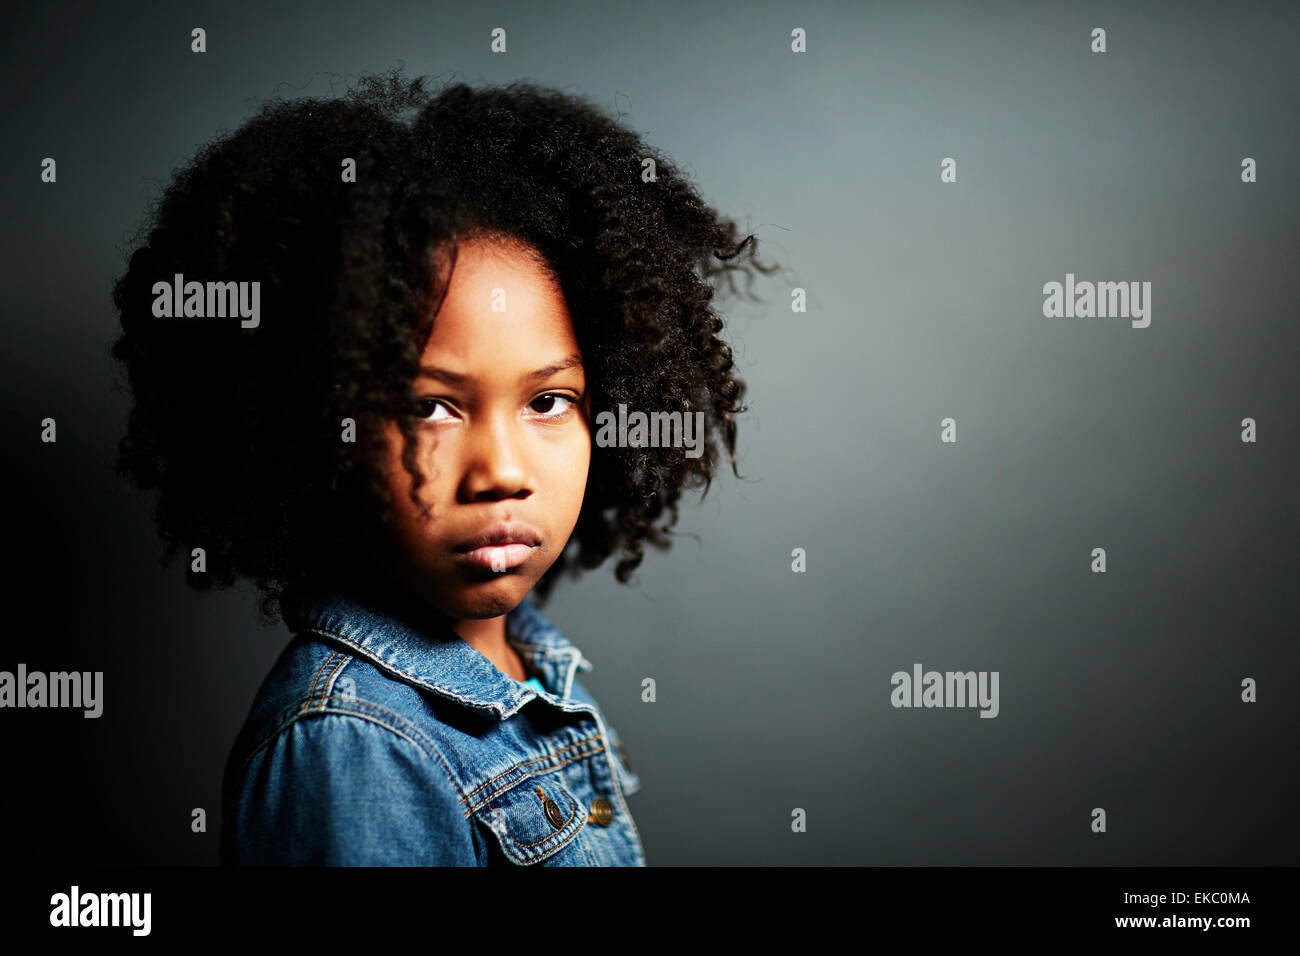 Girl with afro - Stock Image